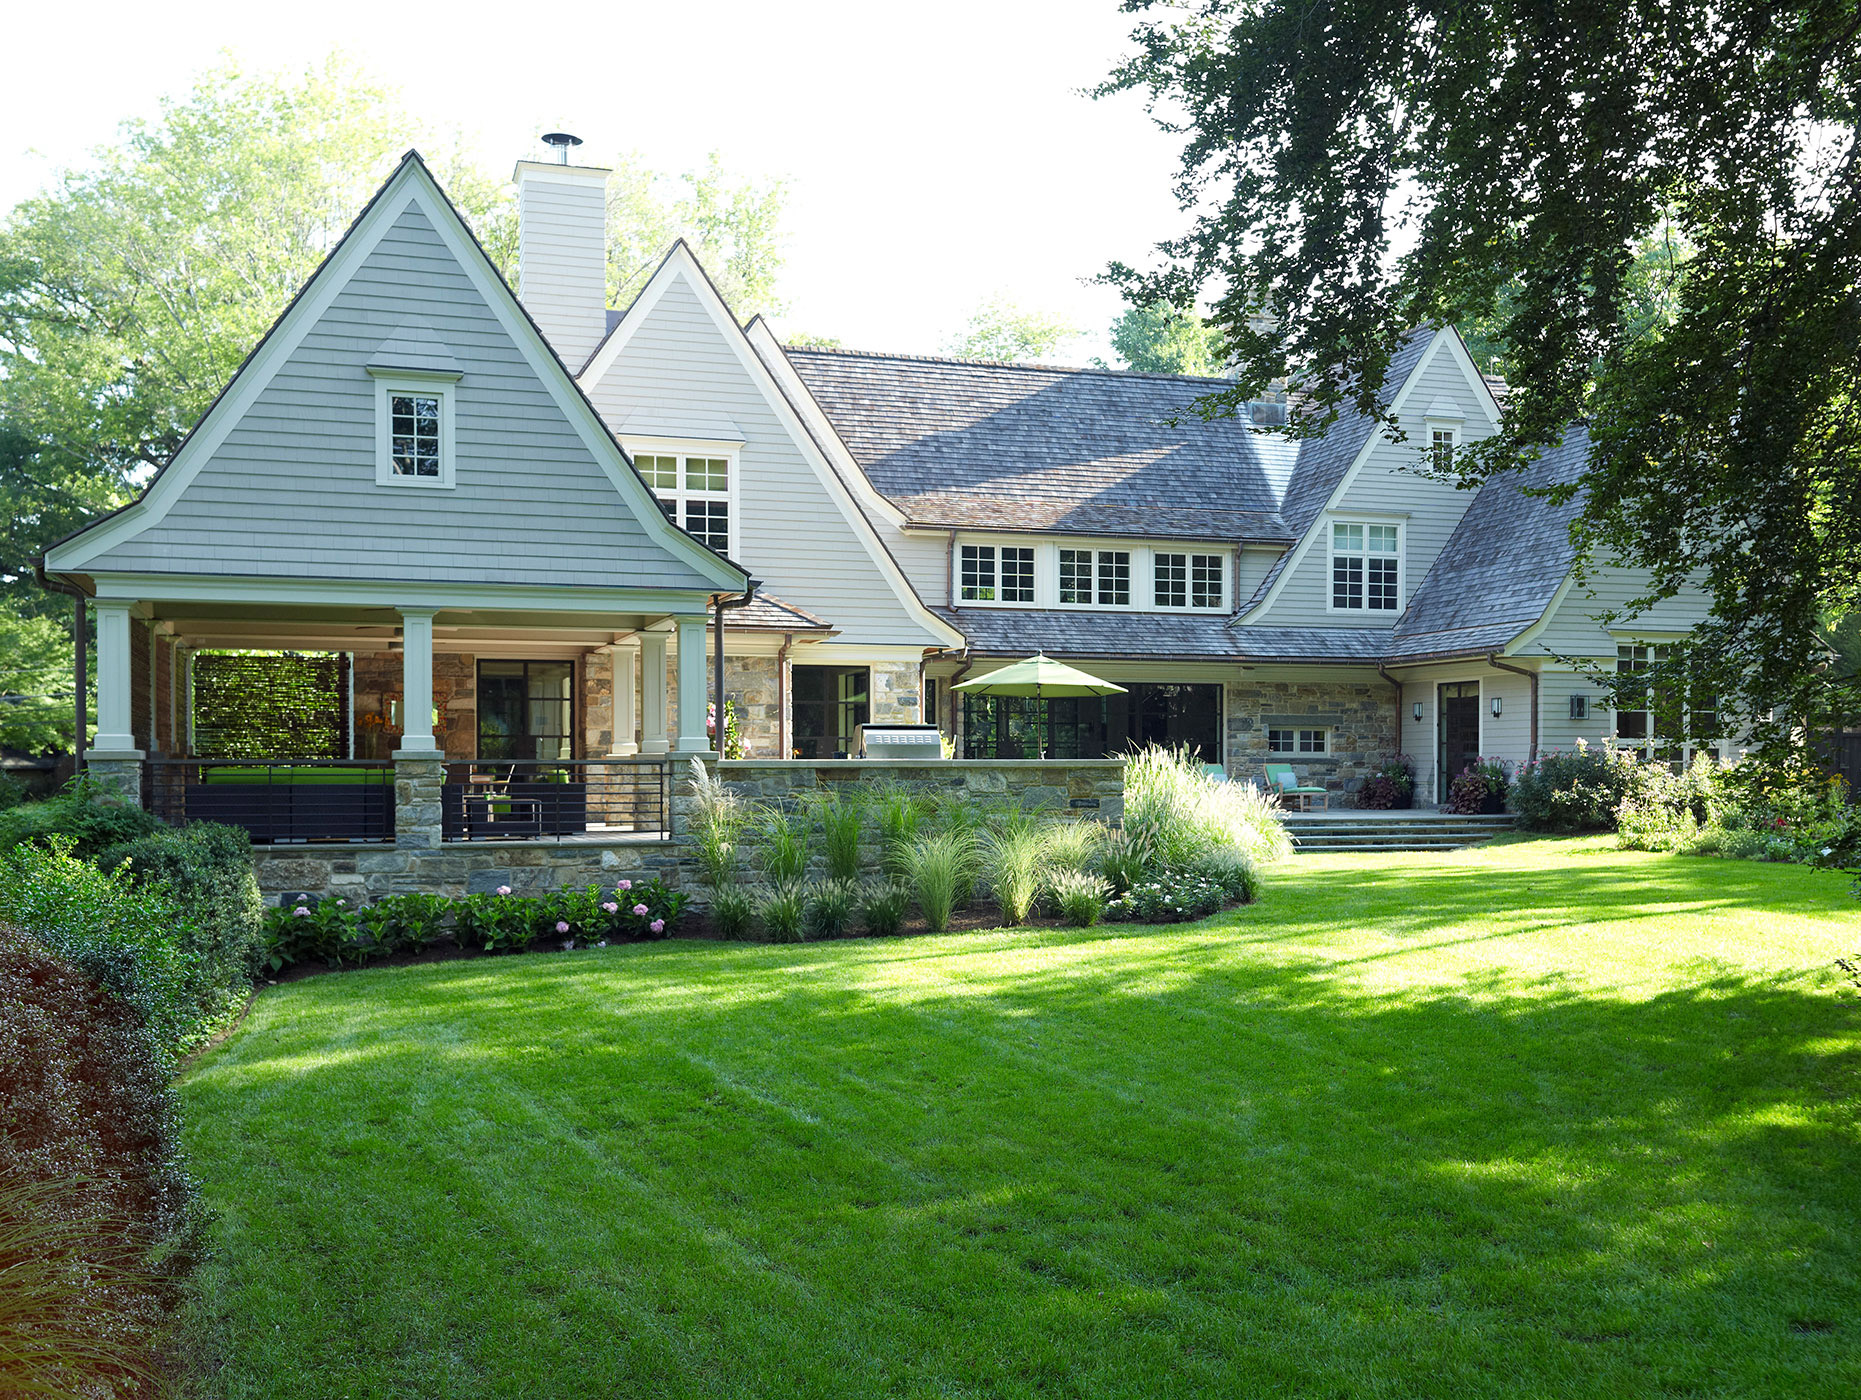 House in Scarsdale, New York